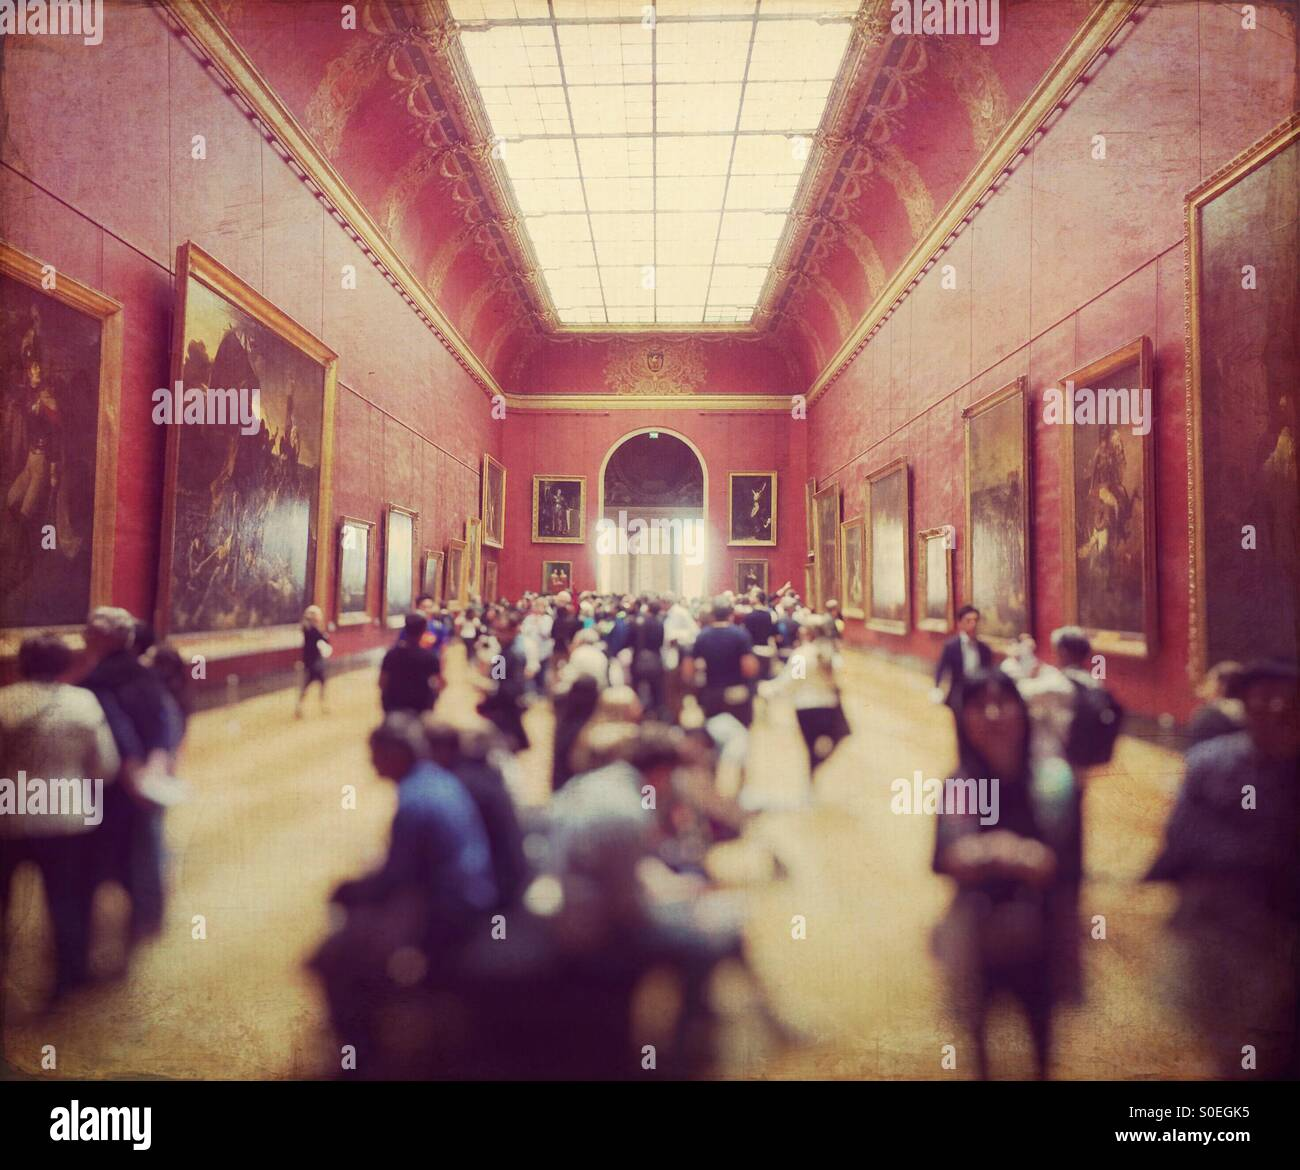 Crowd of tourists in the Red Room gallery at the Louvre museum in Paris, France. Vintage texture overlay.Stock Photo